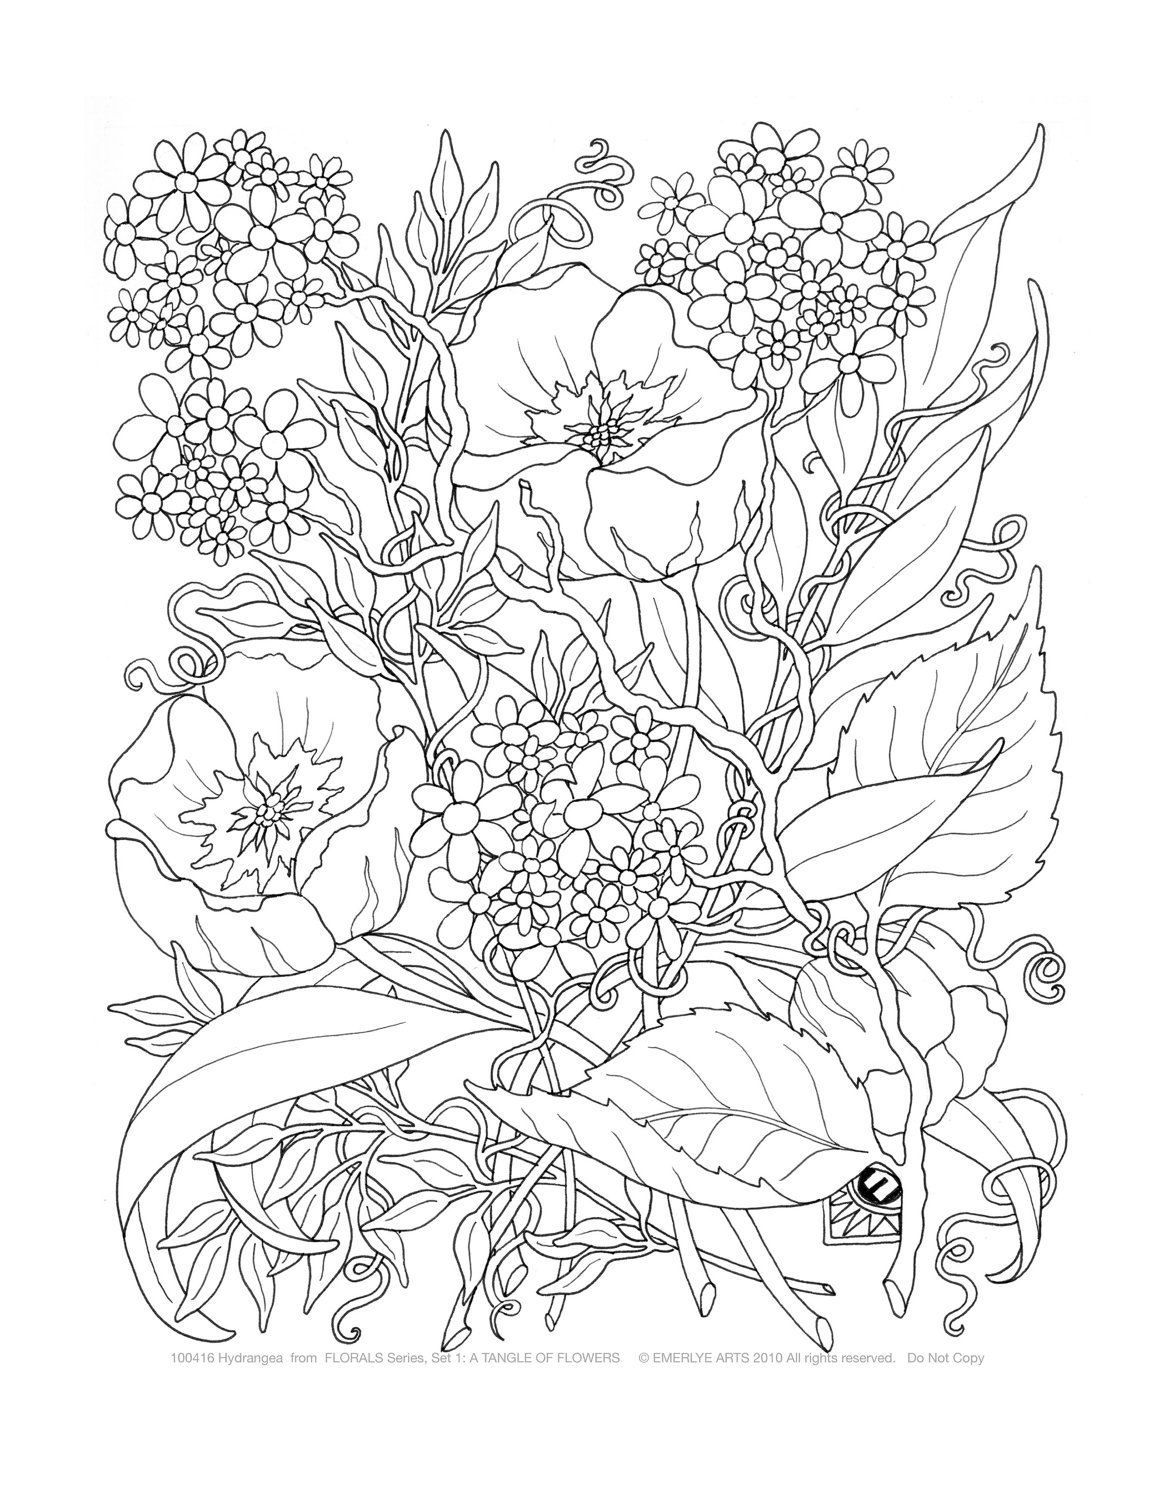 Difficult Flower Coloring Pages - Coloring Home